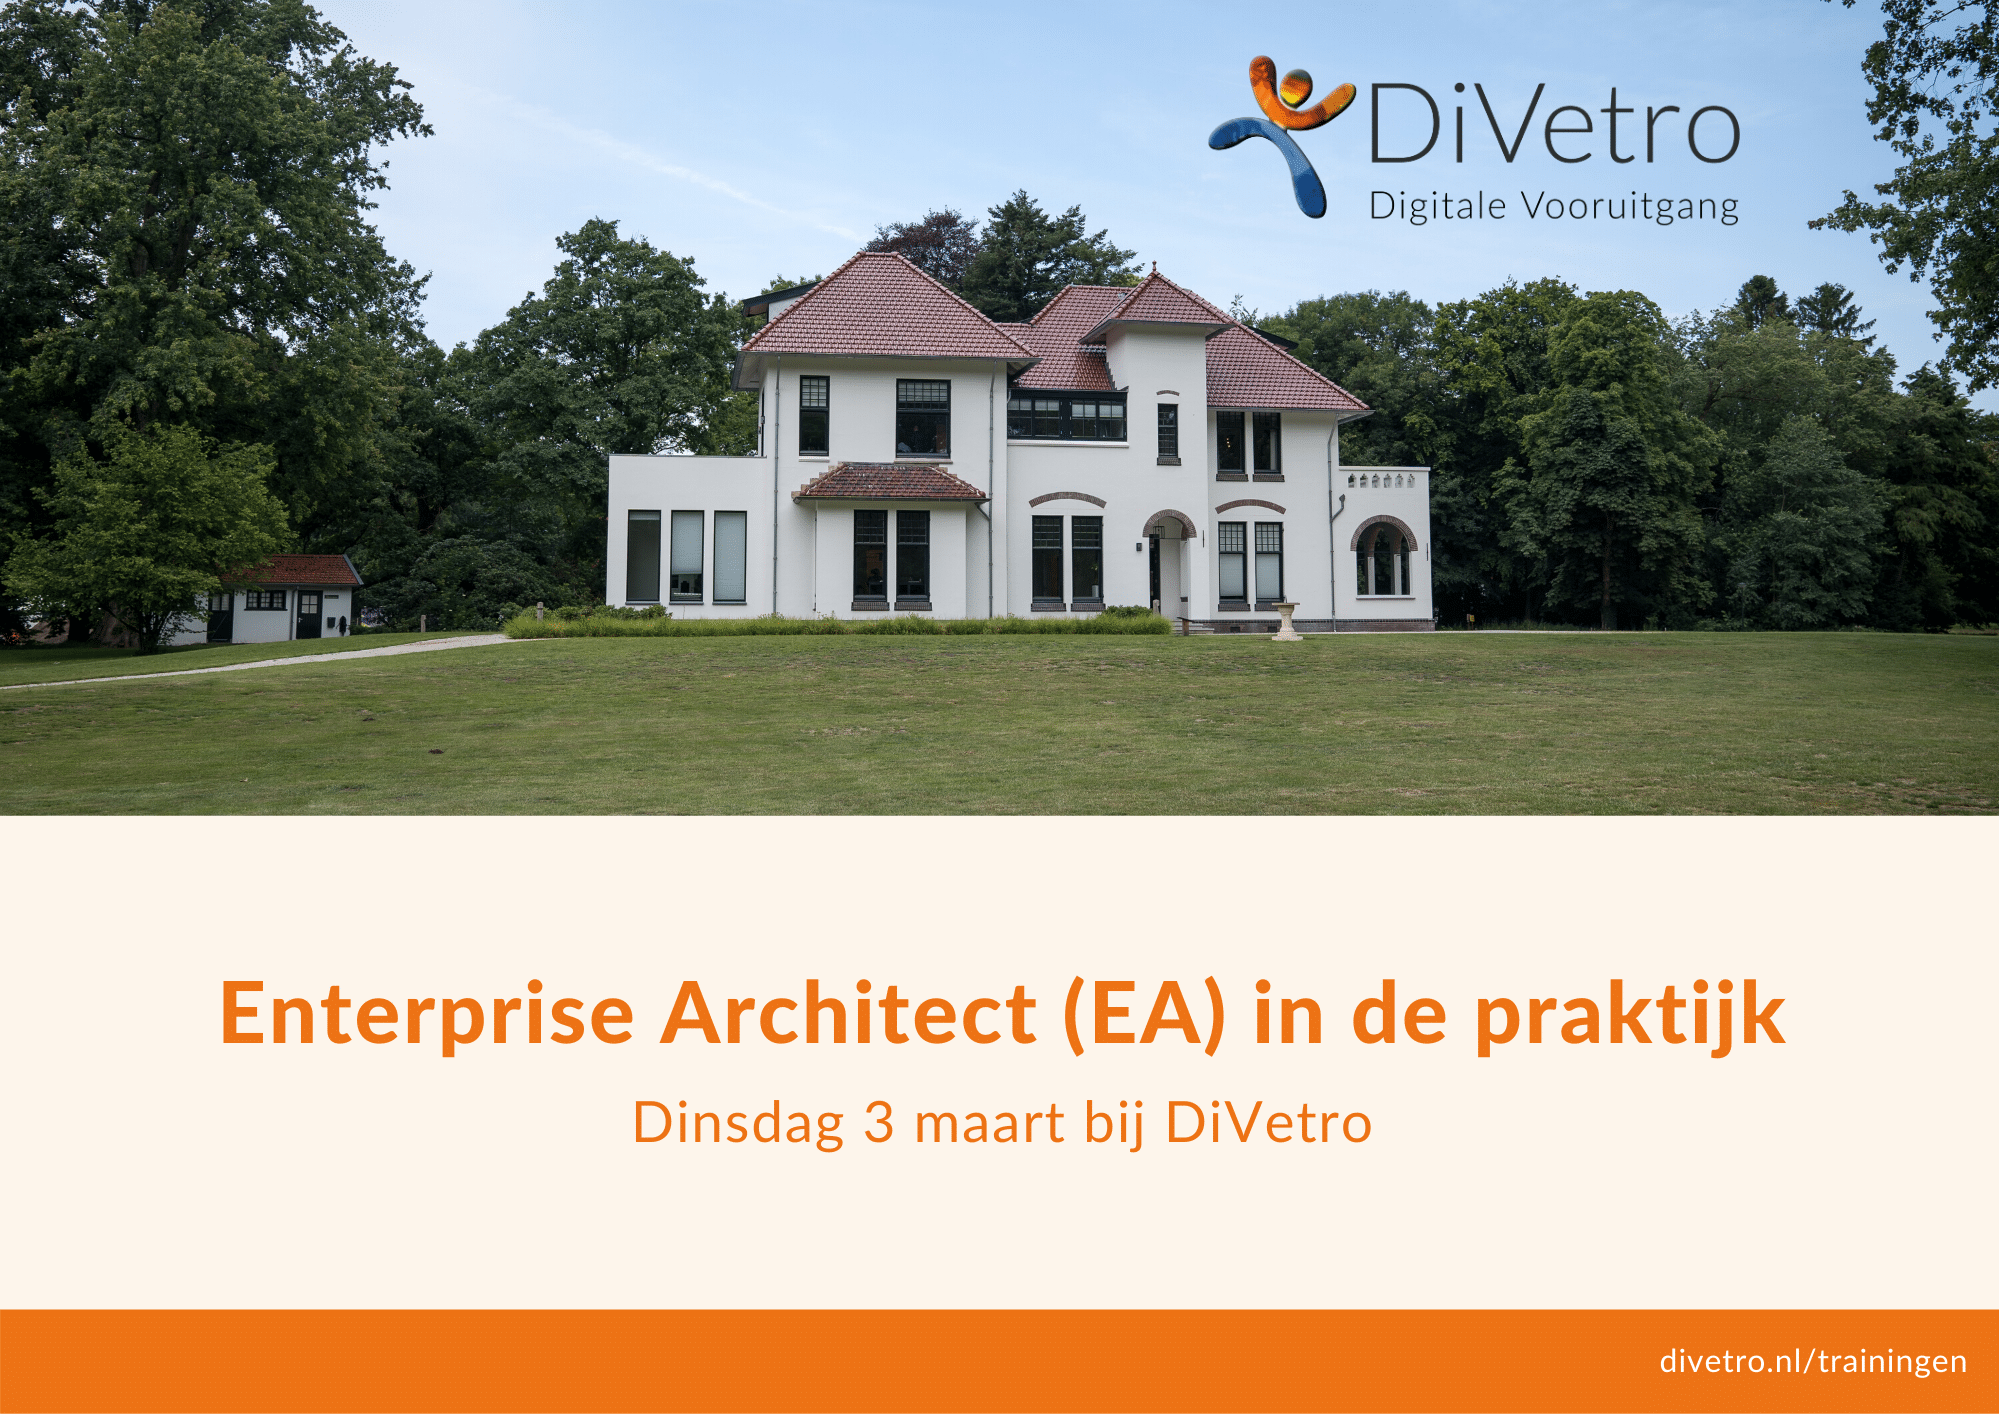 Enterprise Architect training